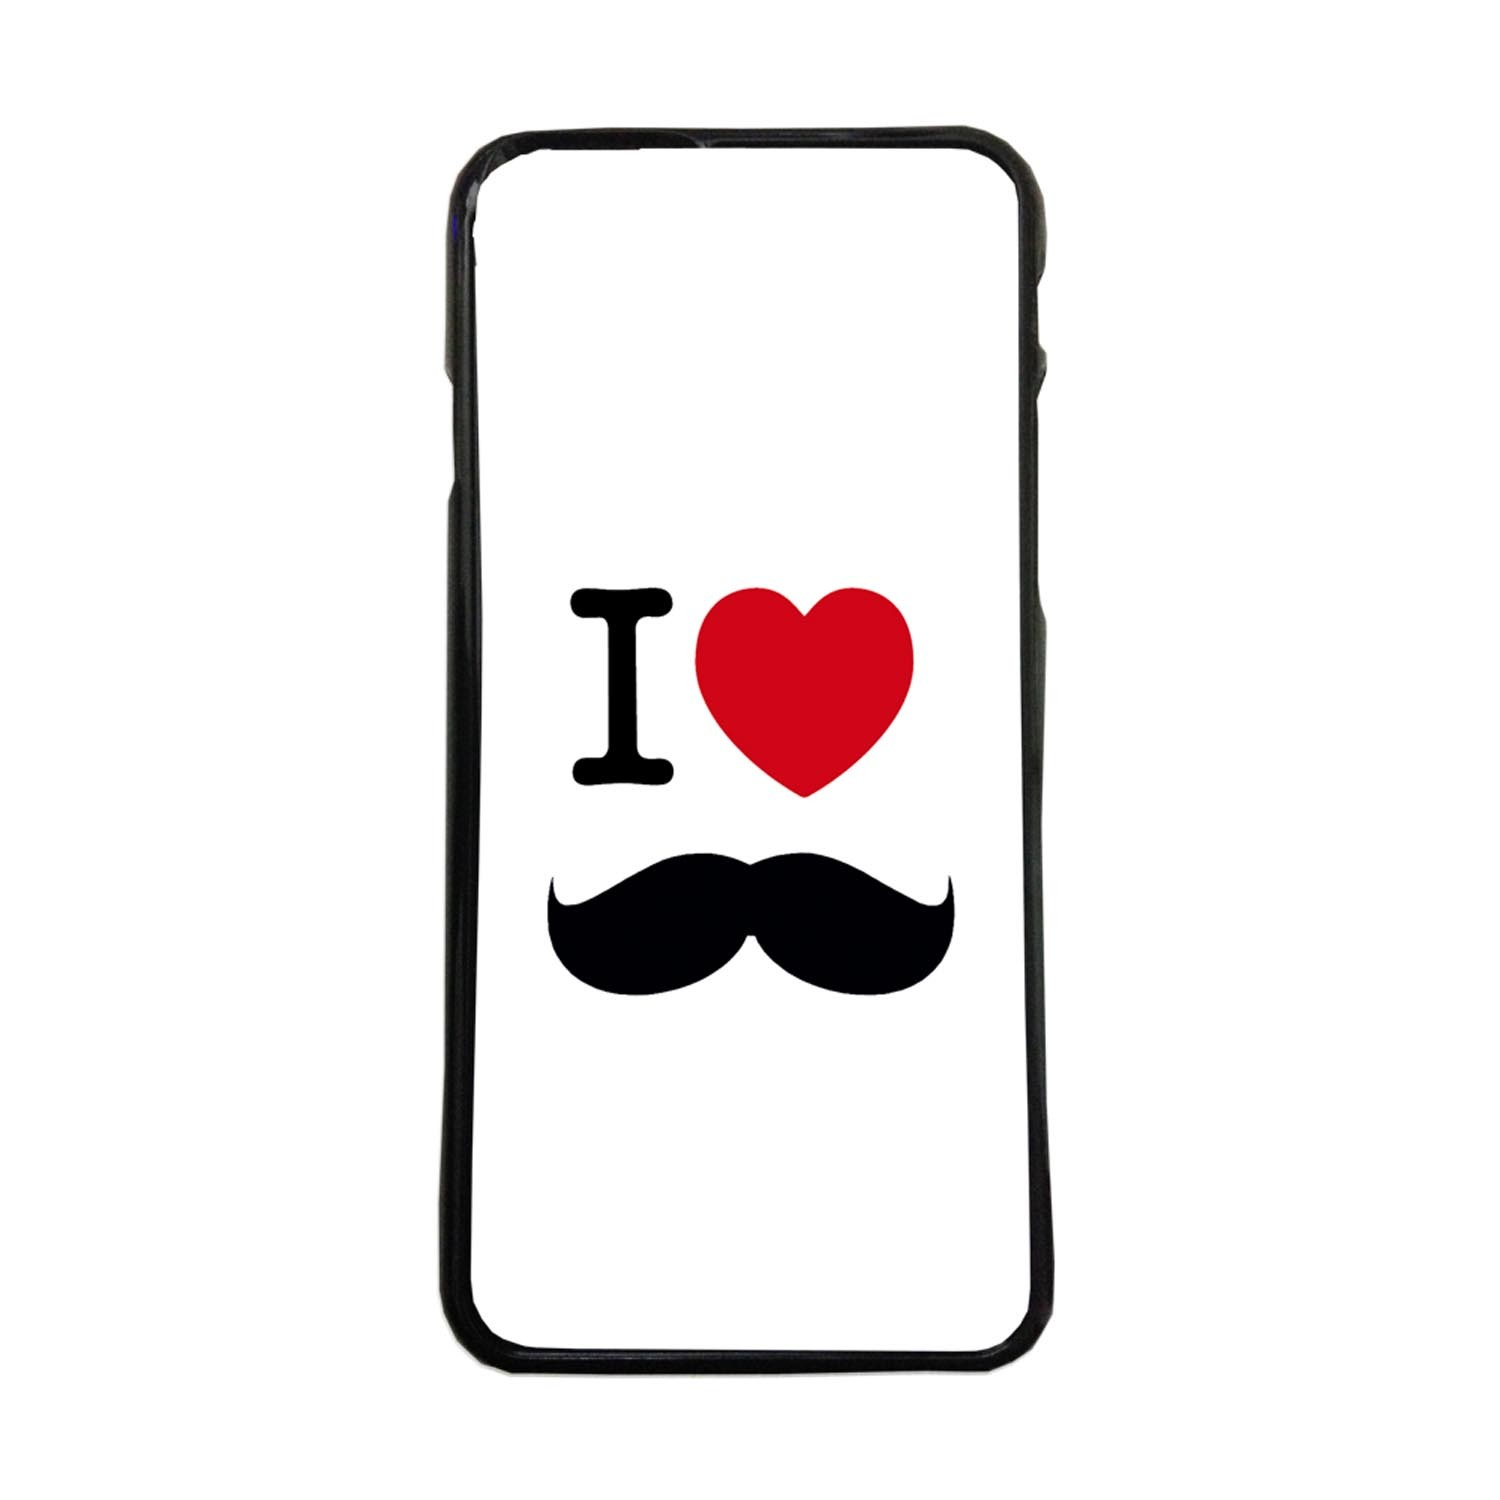 Fundas movil carcasas compatible con samsung galaxy s7 I love bigotes